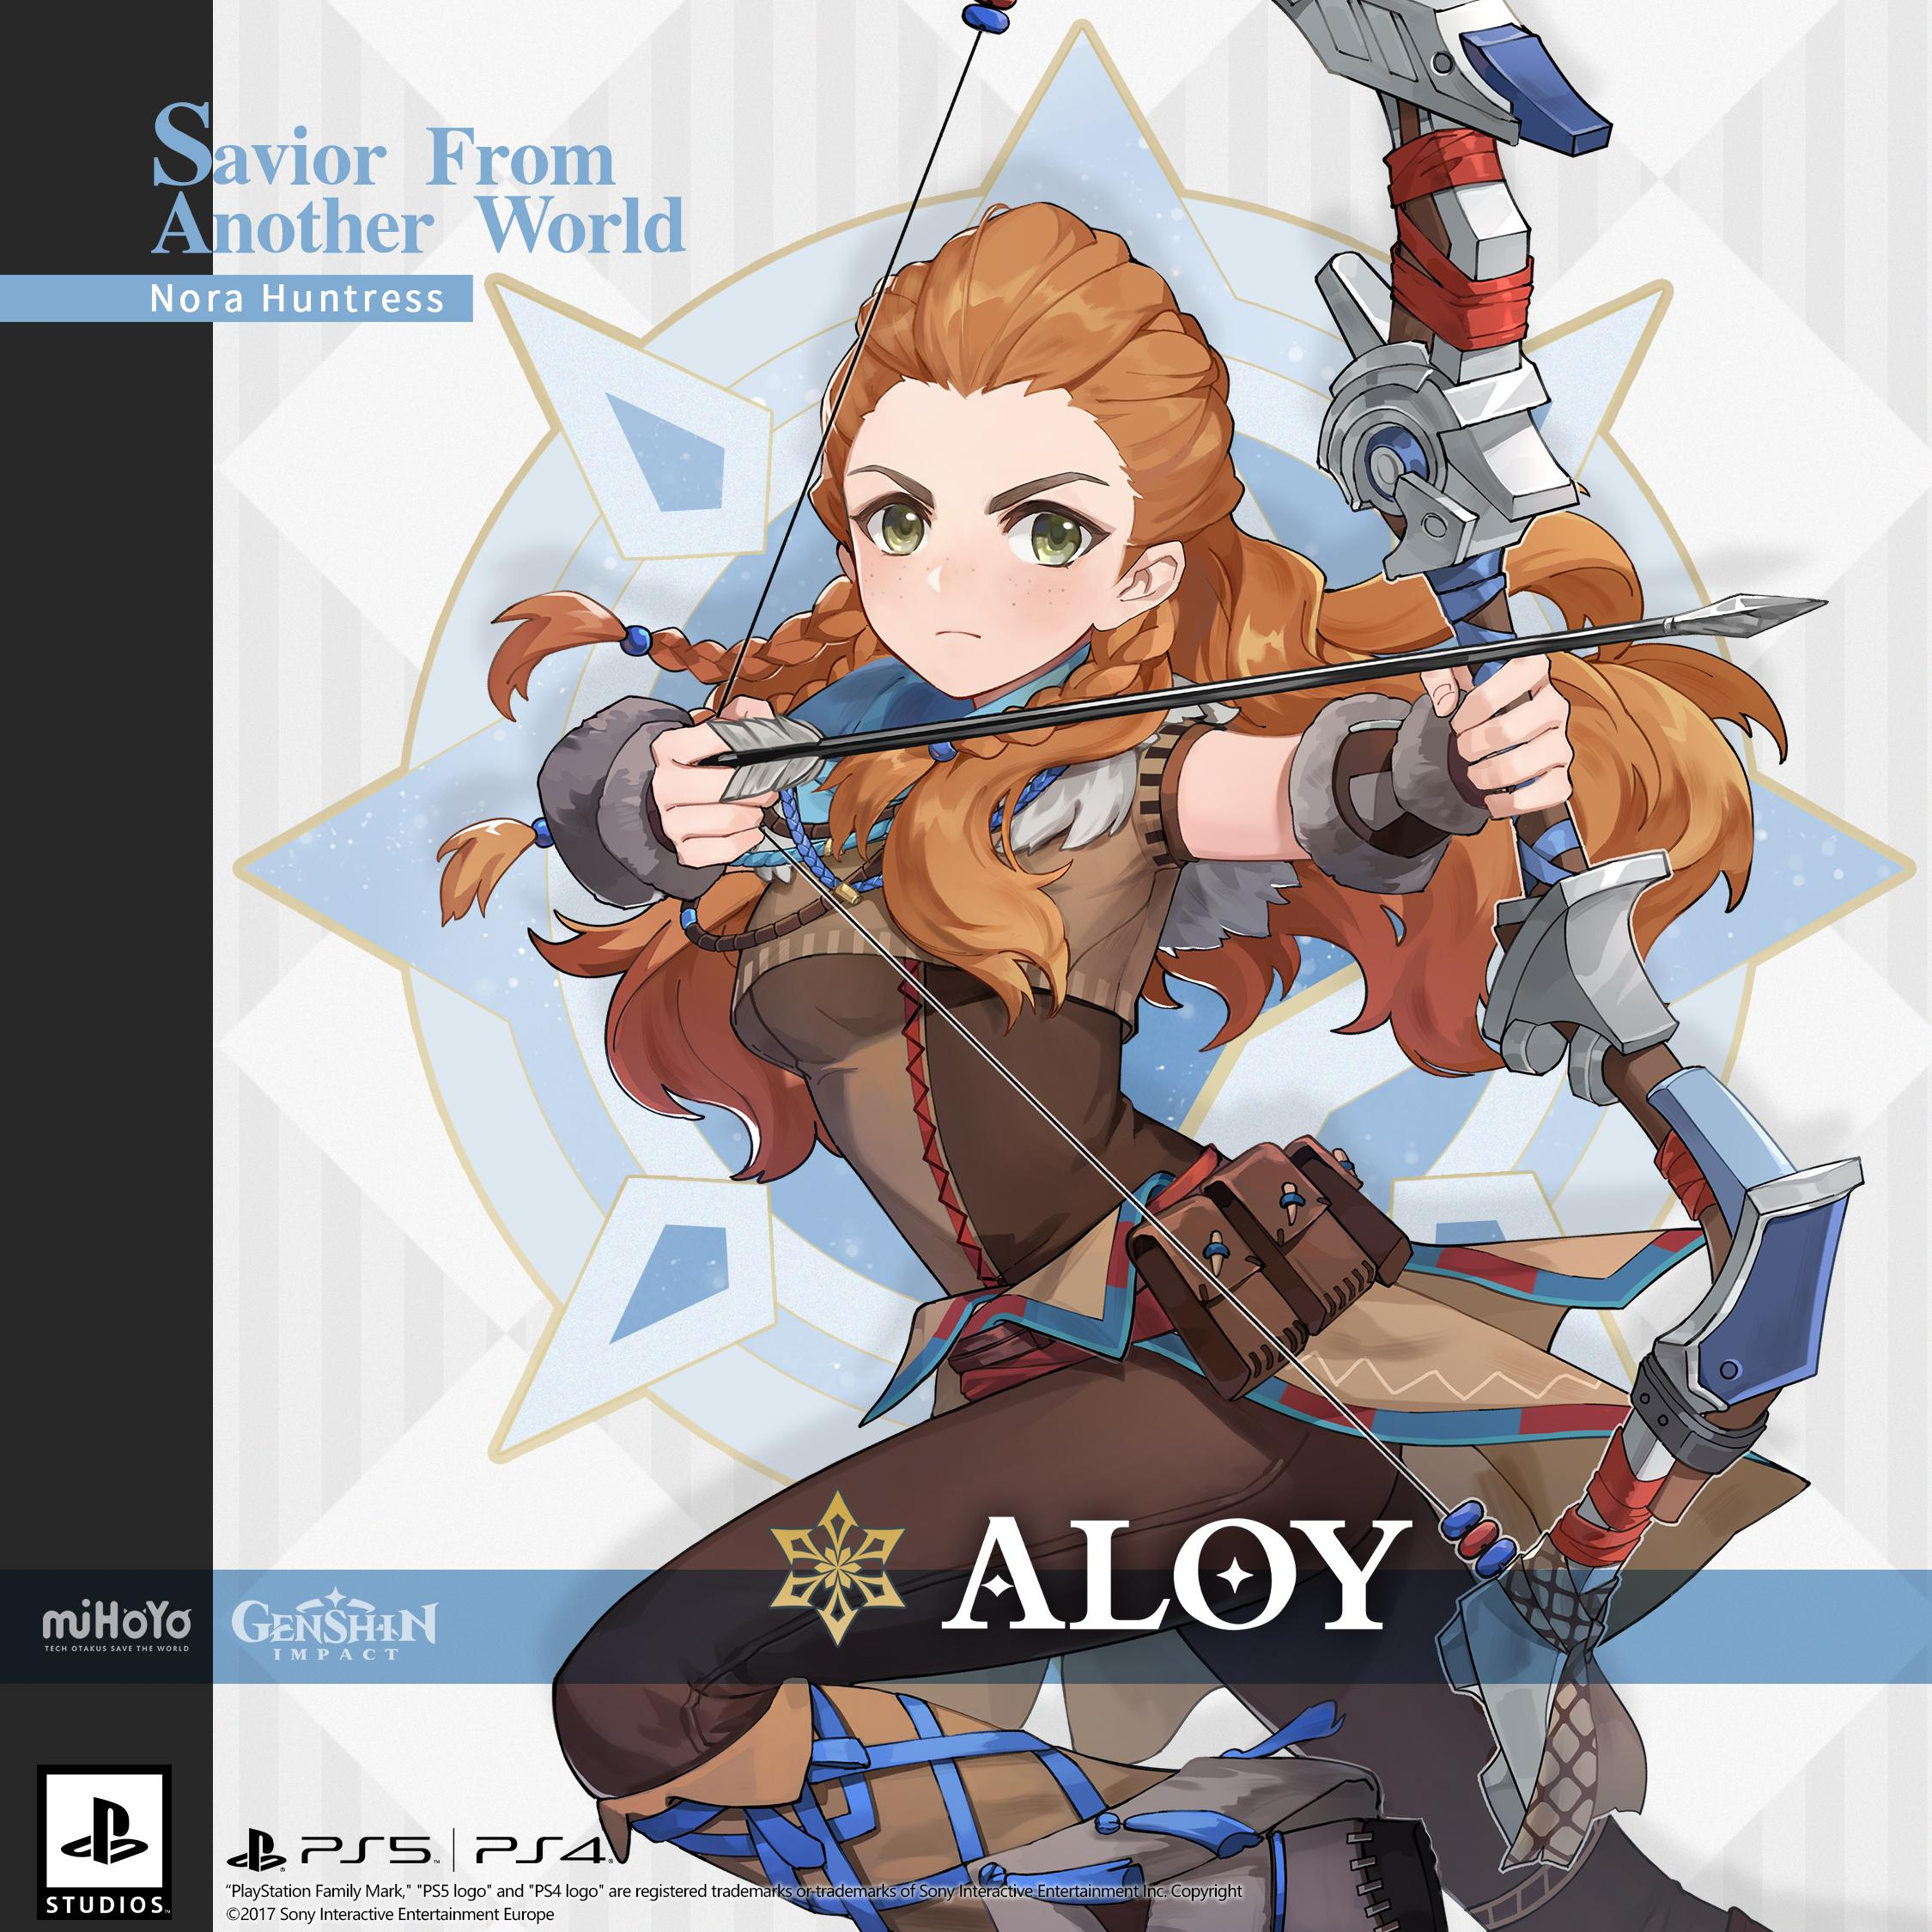 Aloy's Character Overview